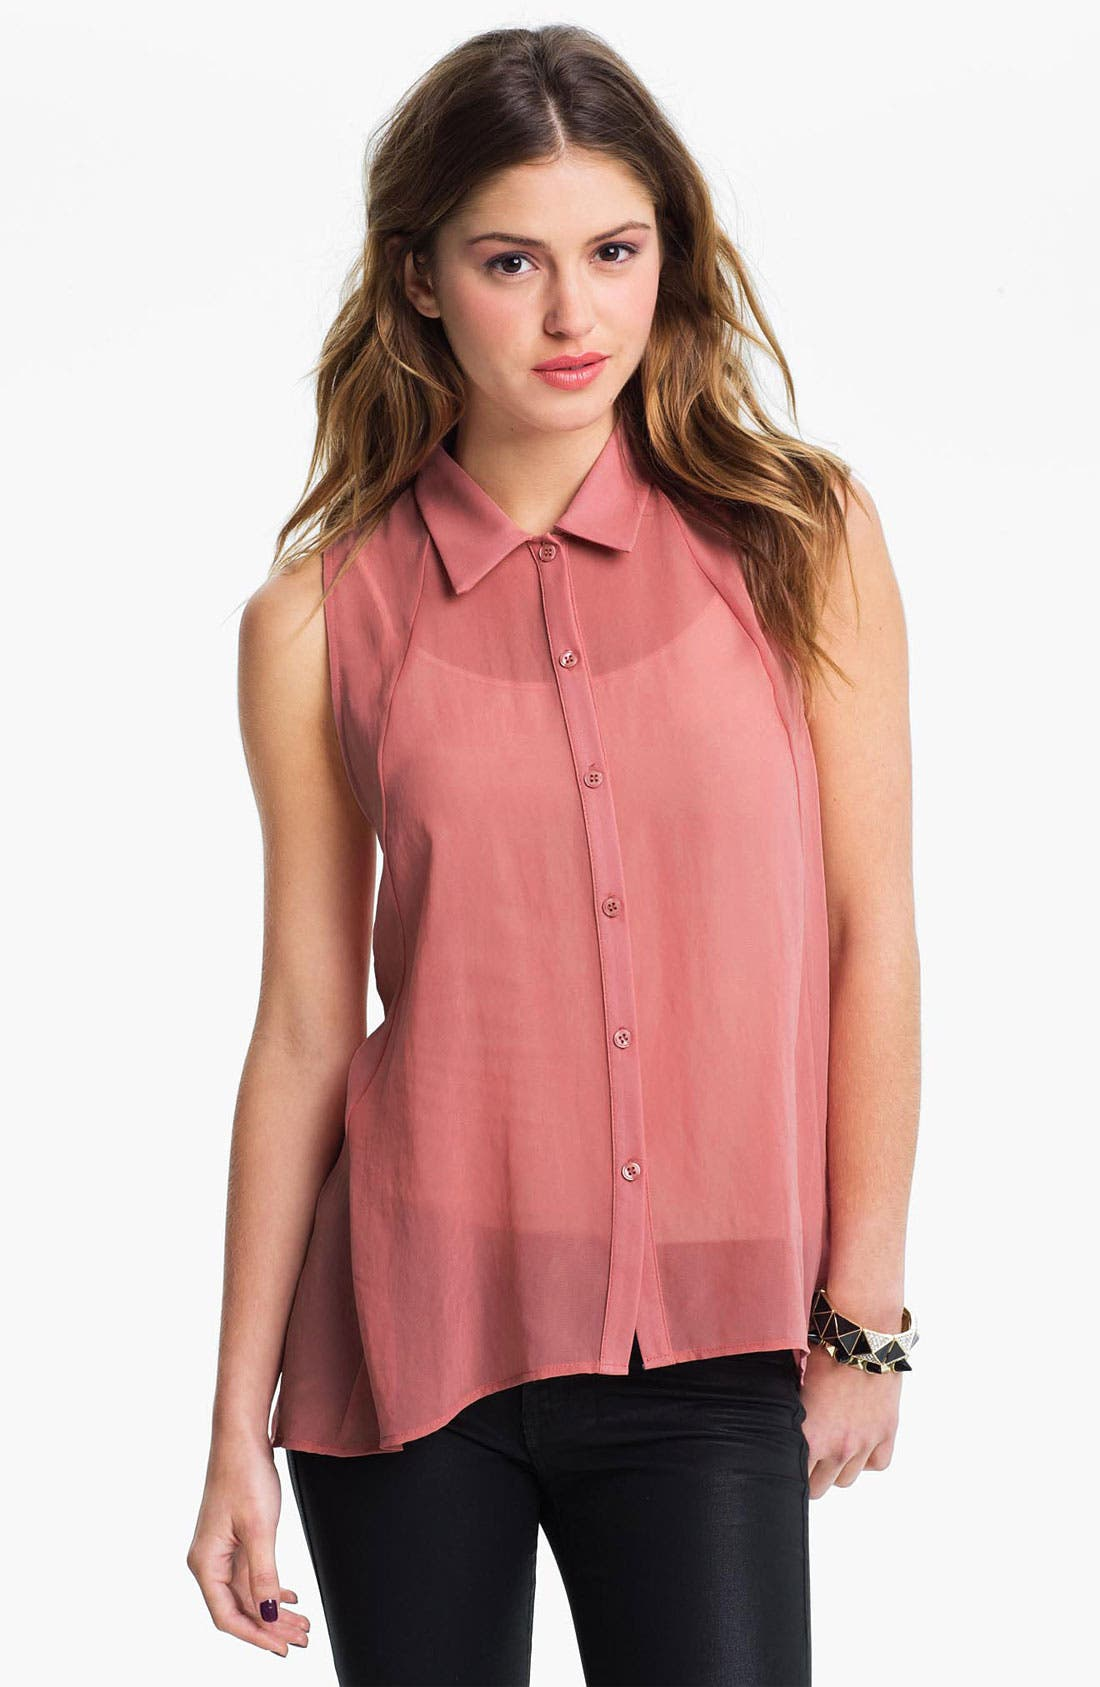 Alternate Image 1 Selected - Lush Lace Back Chiffon Shirt (Juniors)